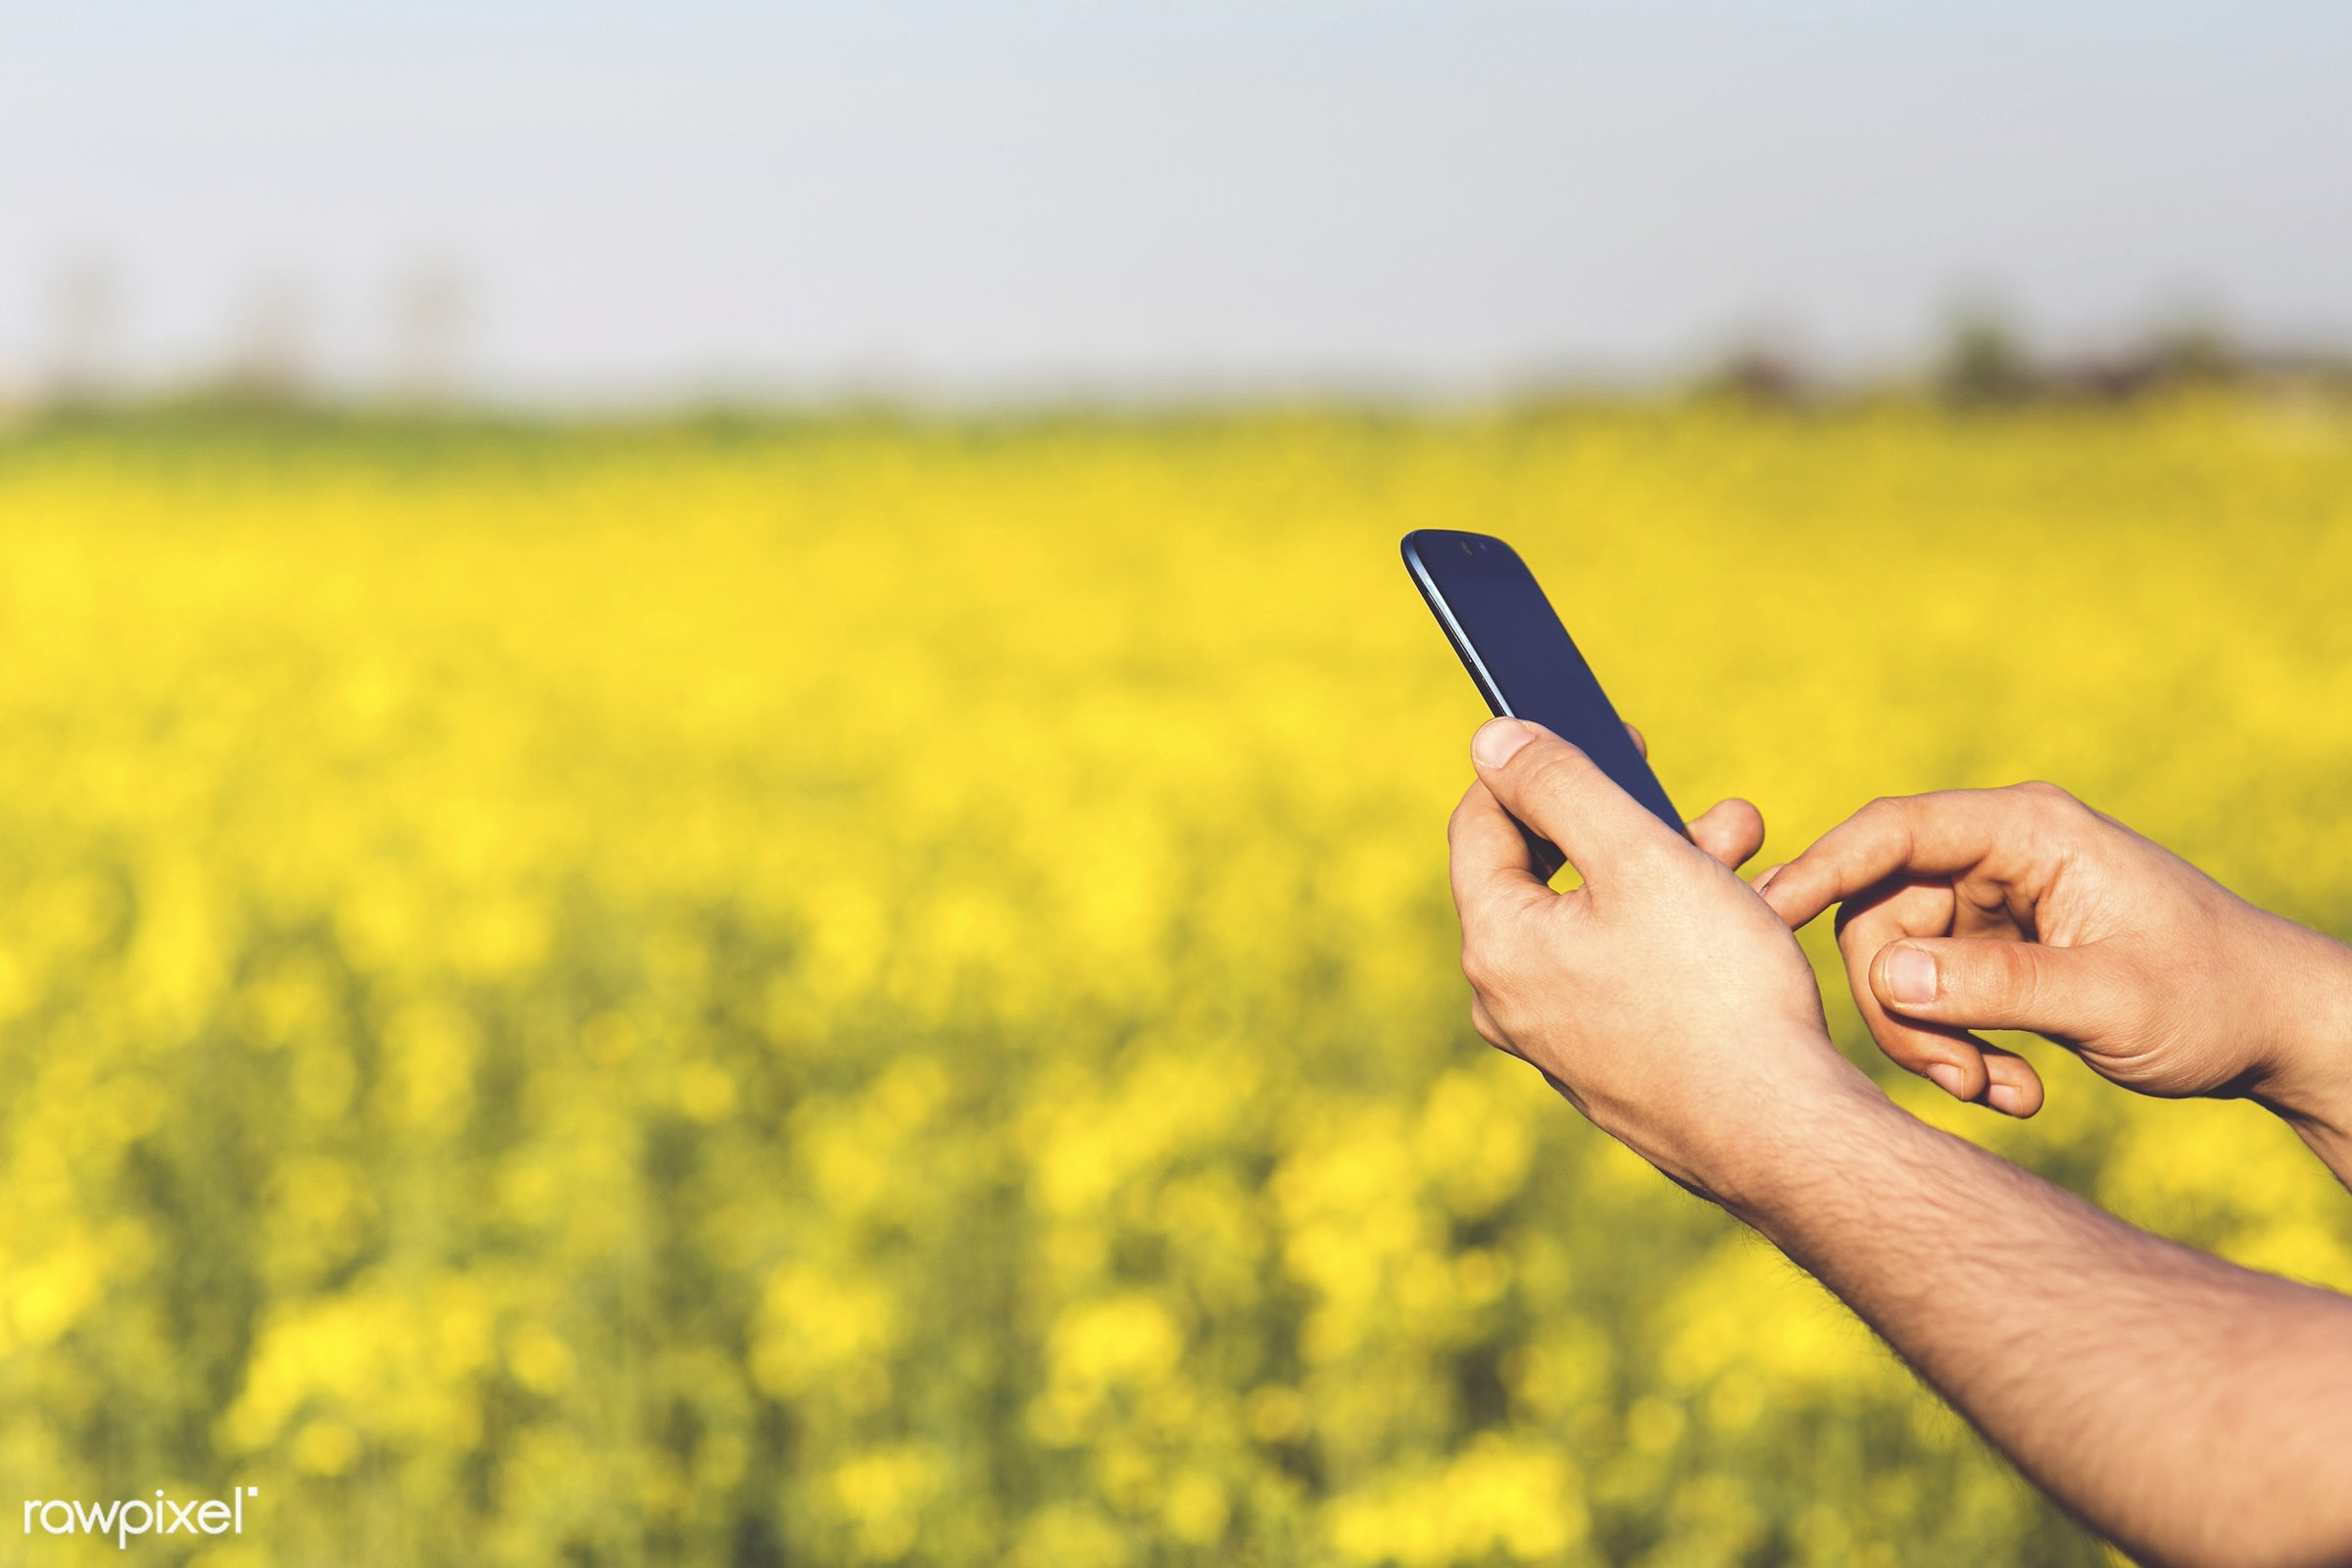 Man using a phone by a field - blank space, cc0, cellphone, communication, connection, copy space, design space, device,...